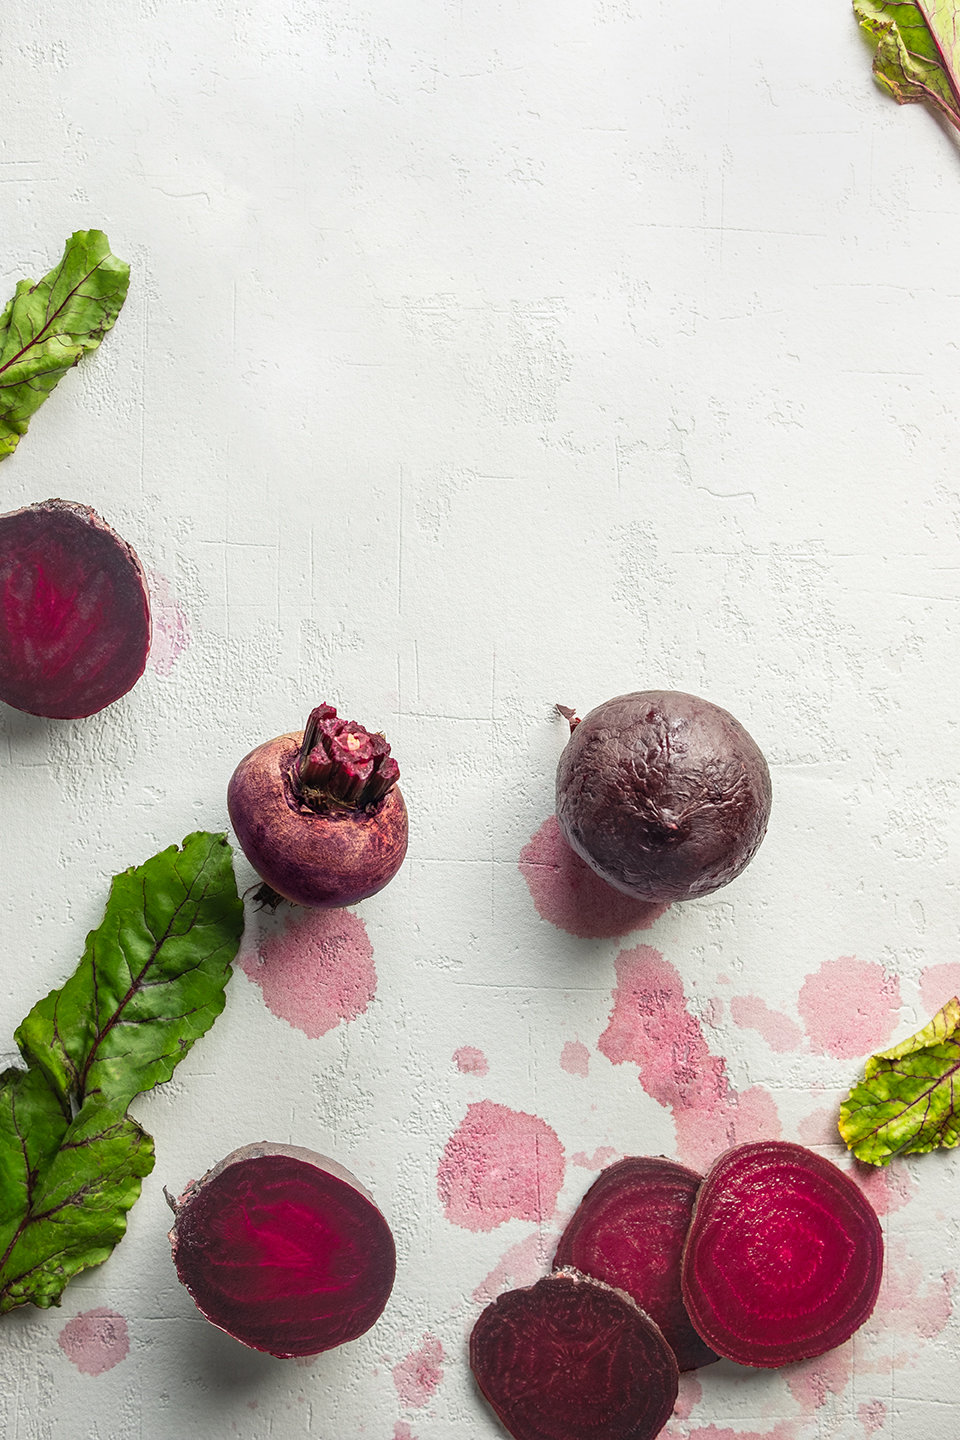 Sliced raw and roasted beets on a white background stained by beet juice.